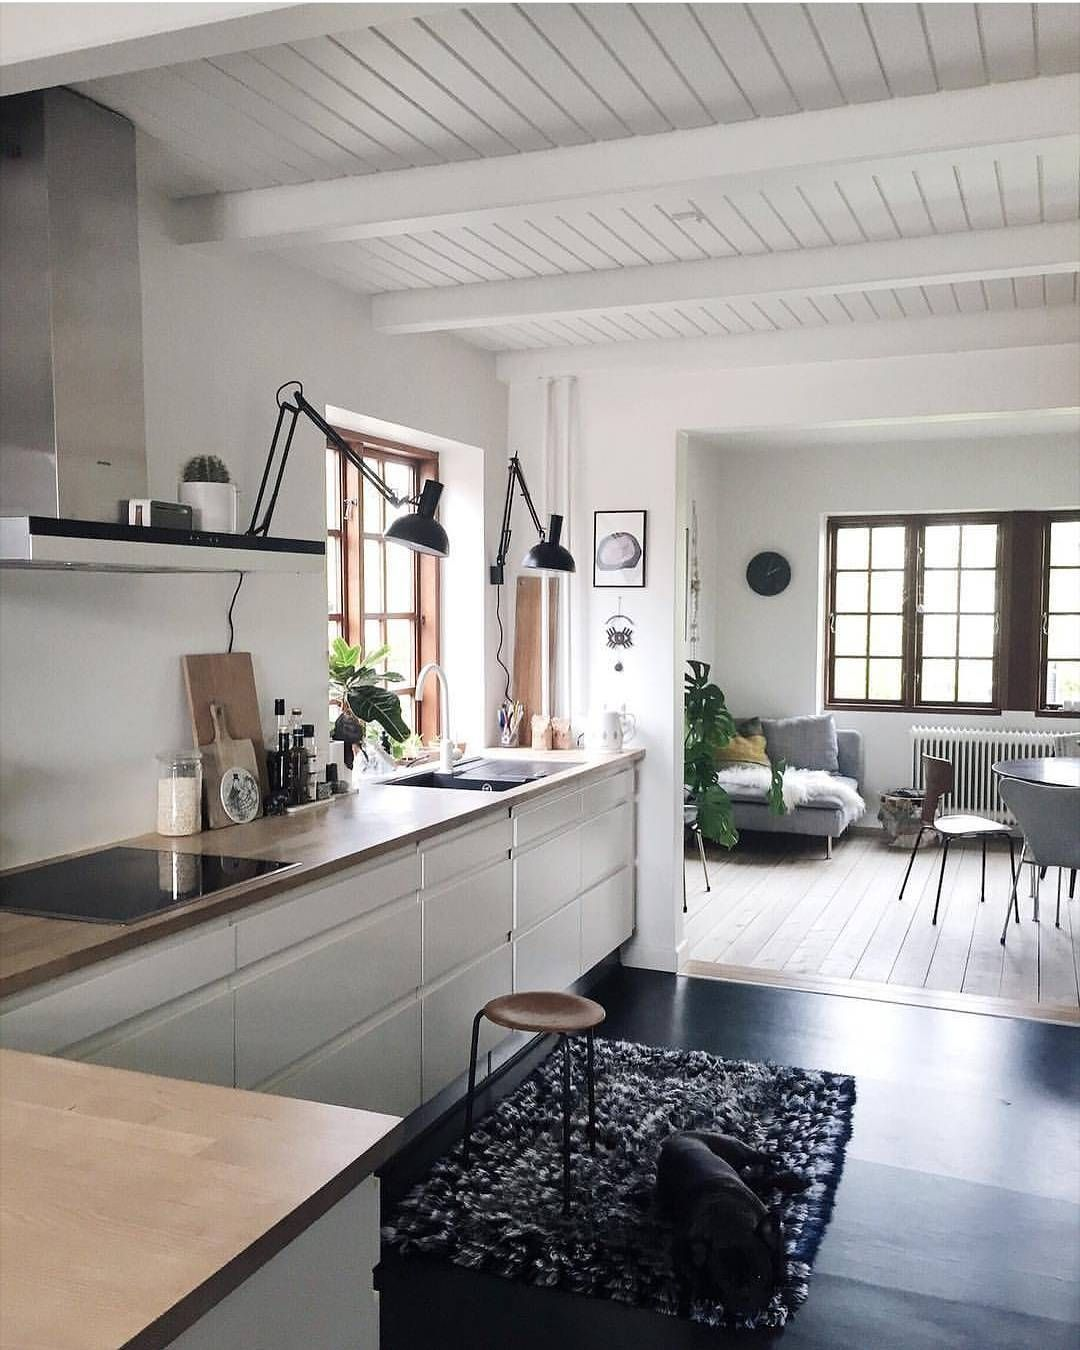 30 Way To Reface and Refinish Kitchen Cabinets With Ideas ...